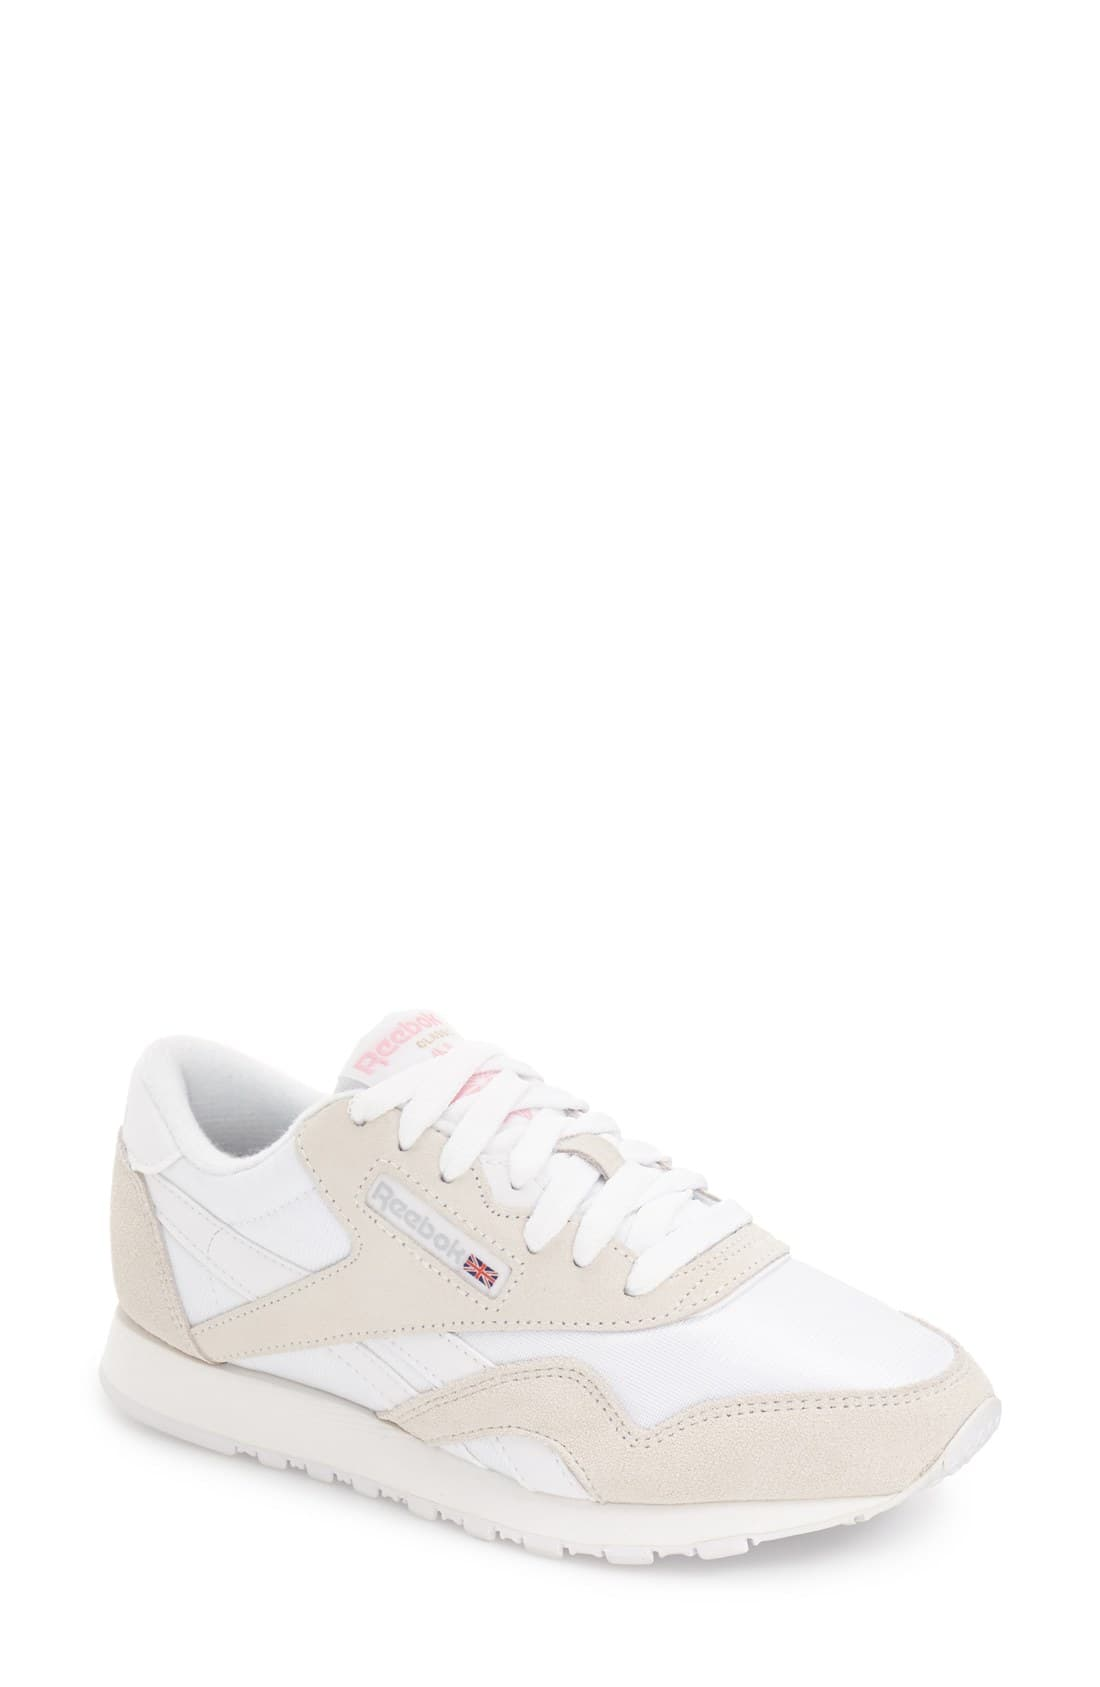 Reebok Classic Nylon Trainers In White And Grey Women